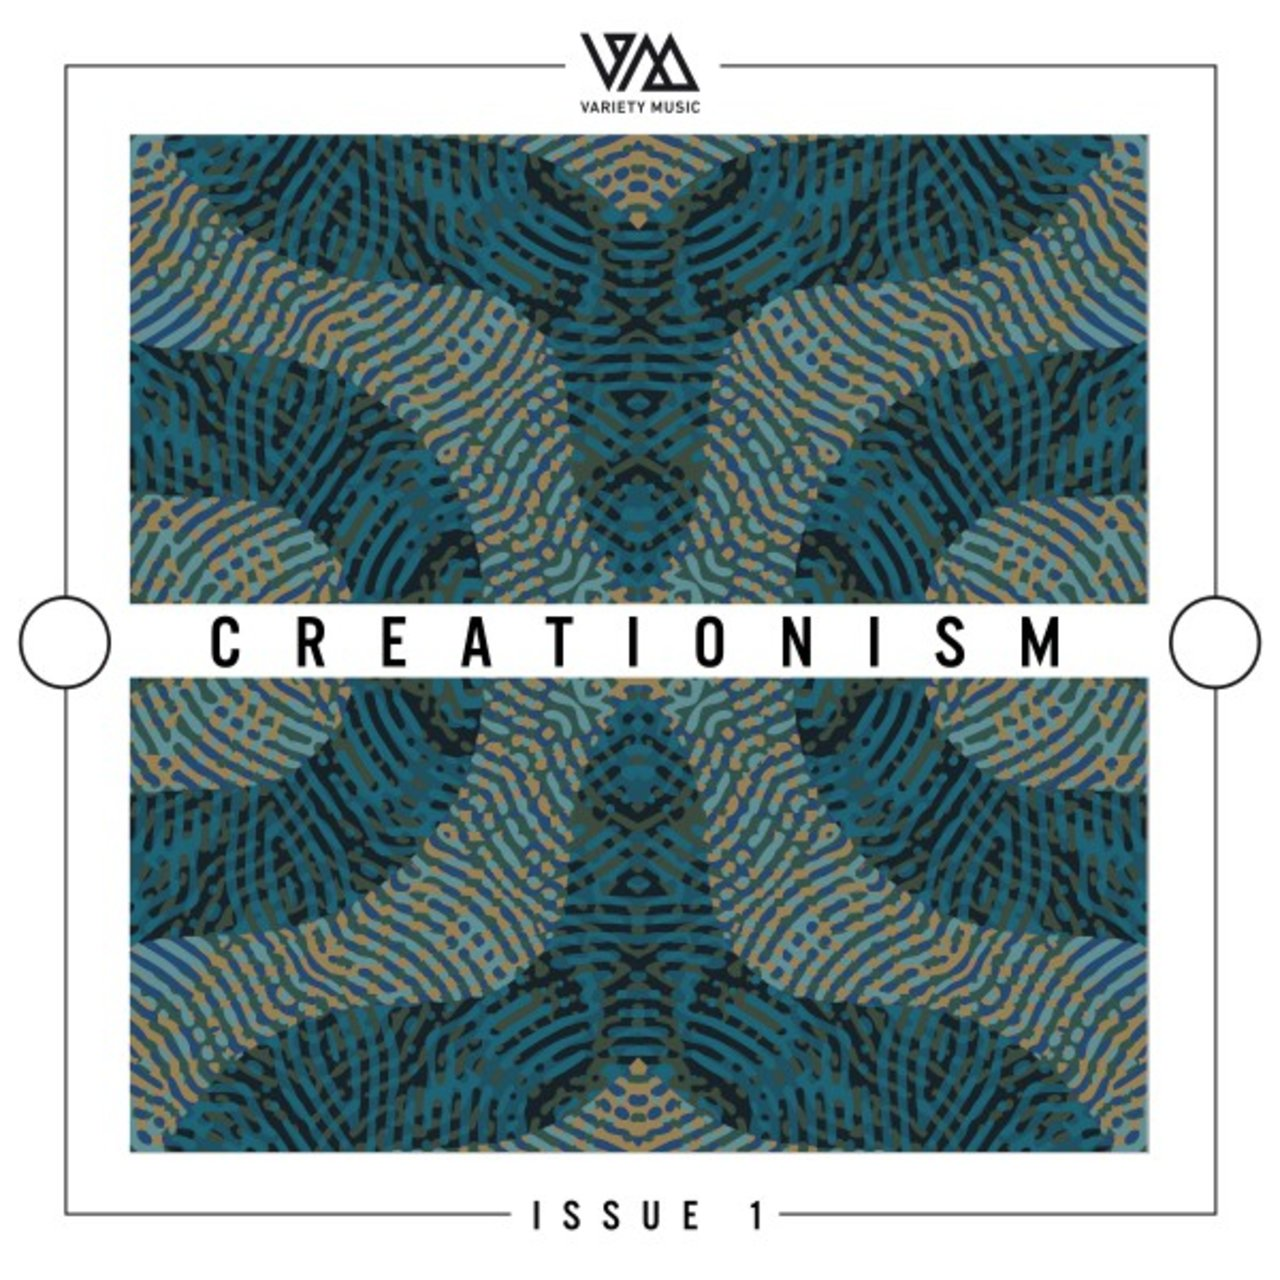 Variety Music Pres. Creationism Issue 1